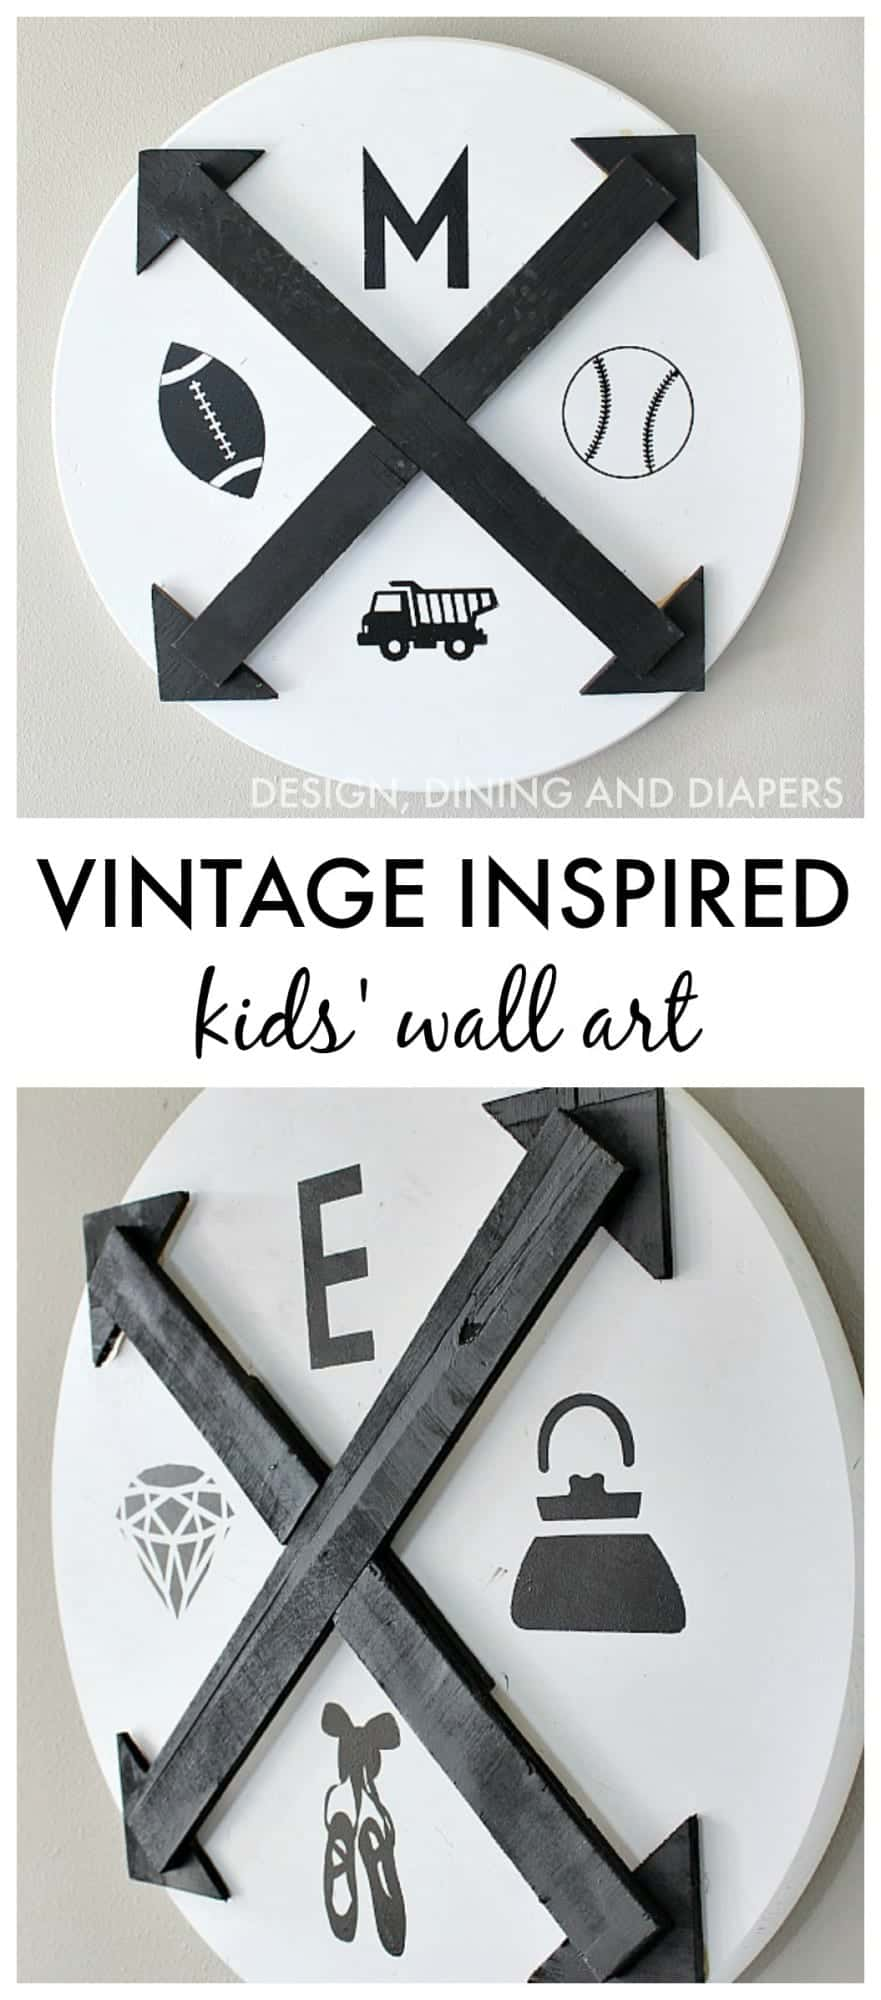 Add-a-little-personalization-to-your-kids-rooms-with-this-Vintage-Inspired-Wall-Art